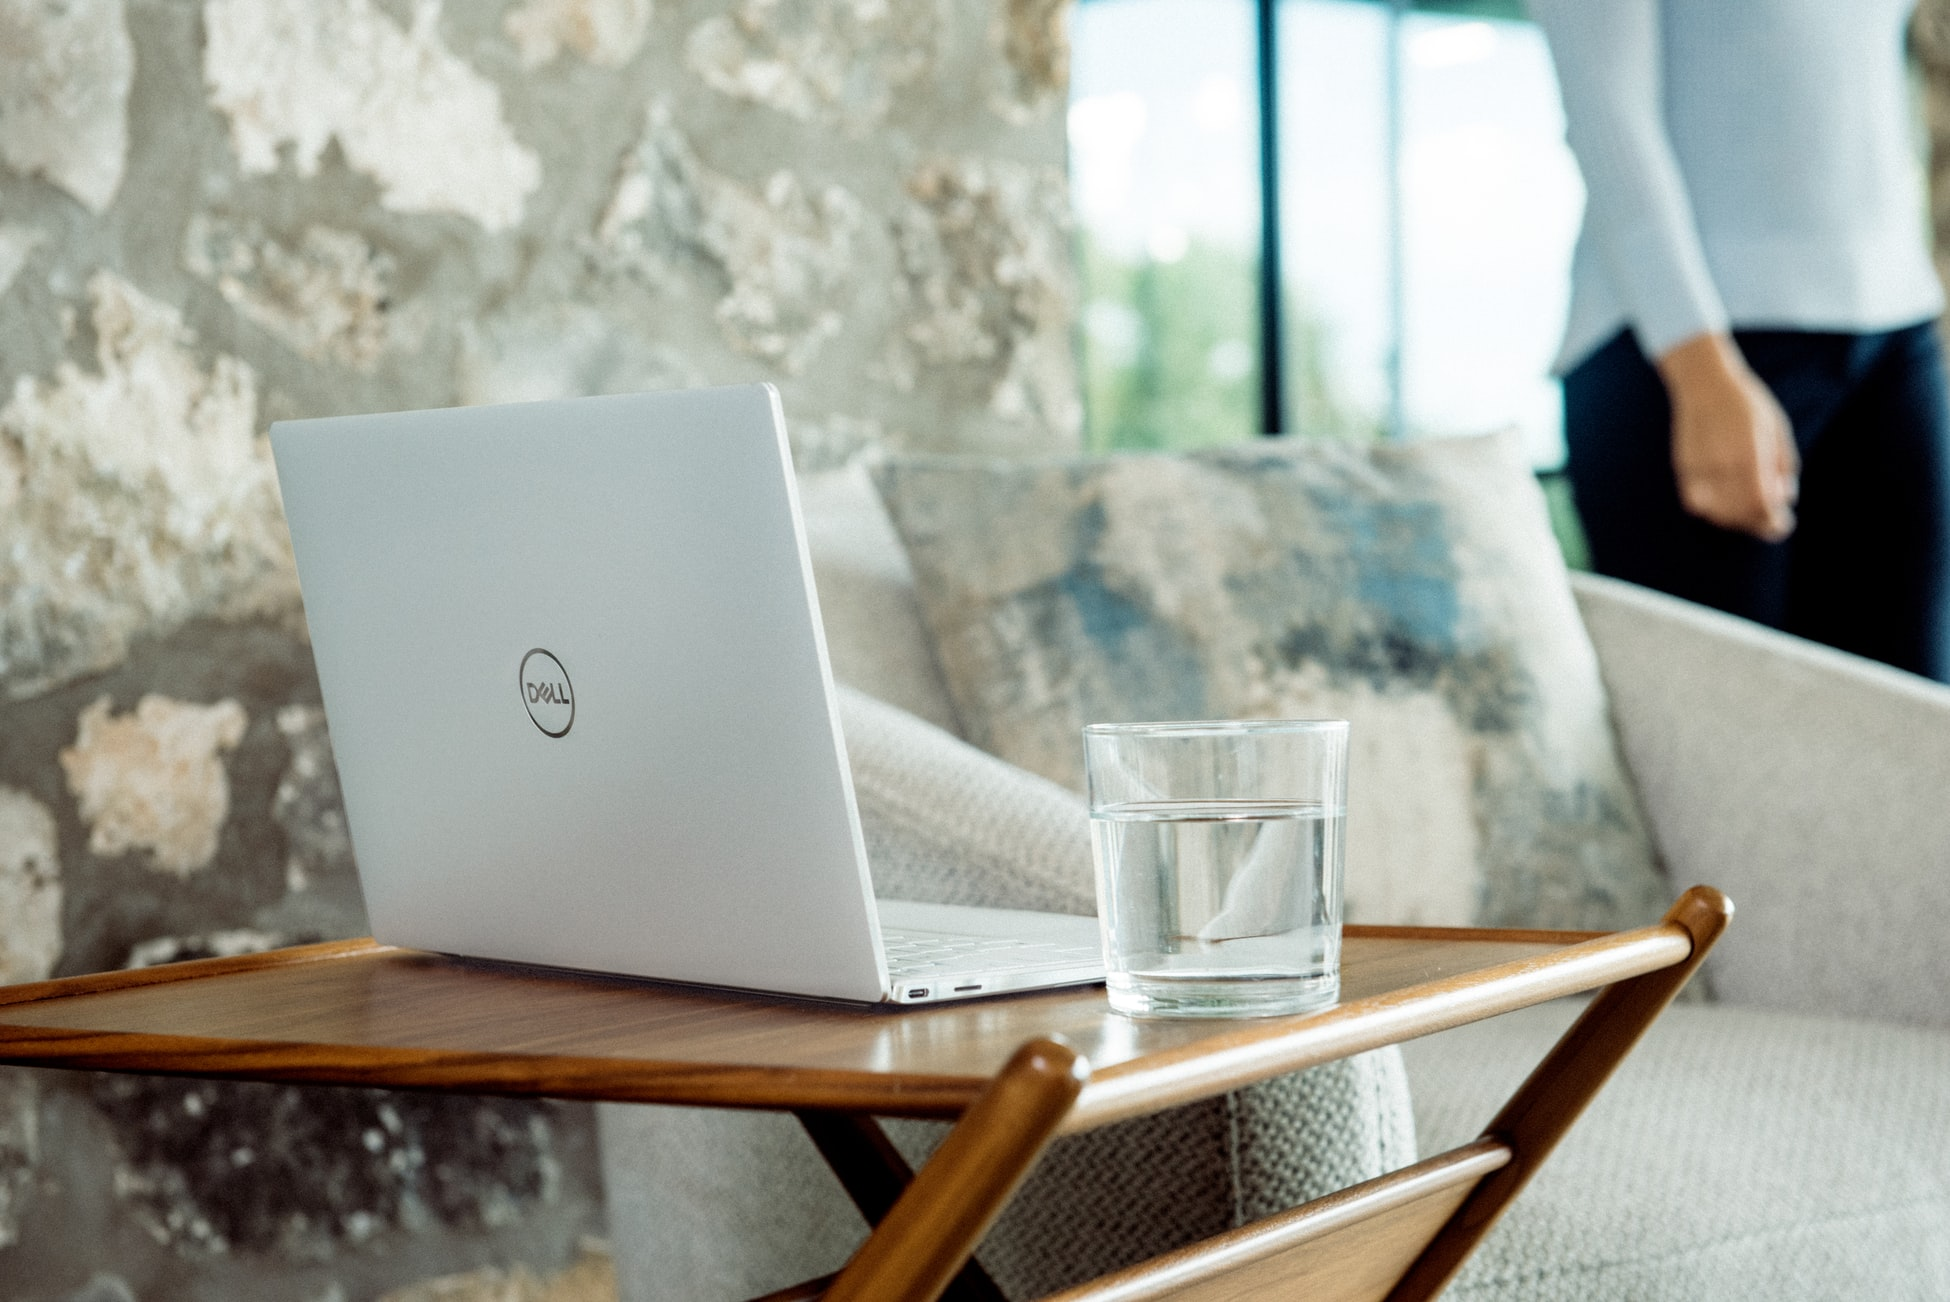 9 Best Deals on Refurbished Electronics You Need for Your Home Office